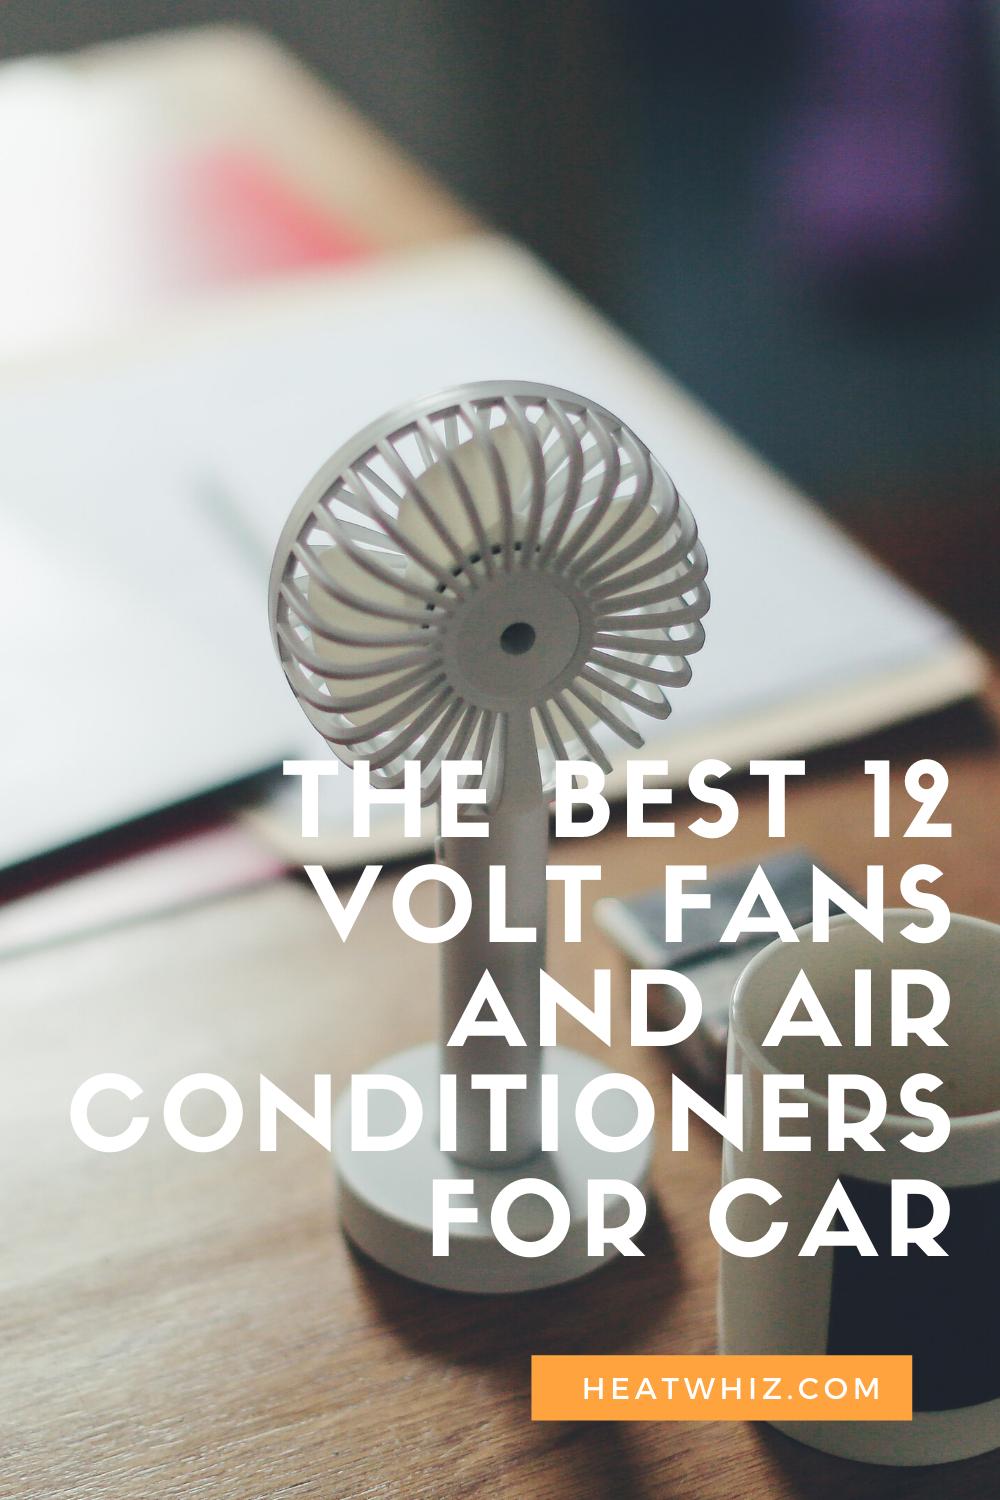 The Best 12 Volt Fans and Air Conditioners for Car